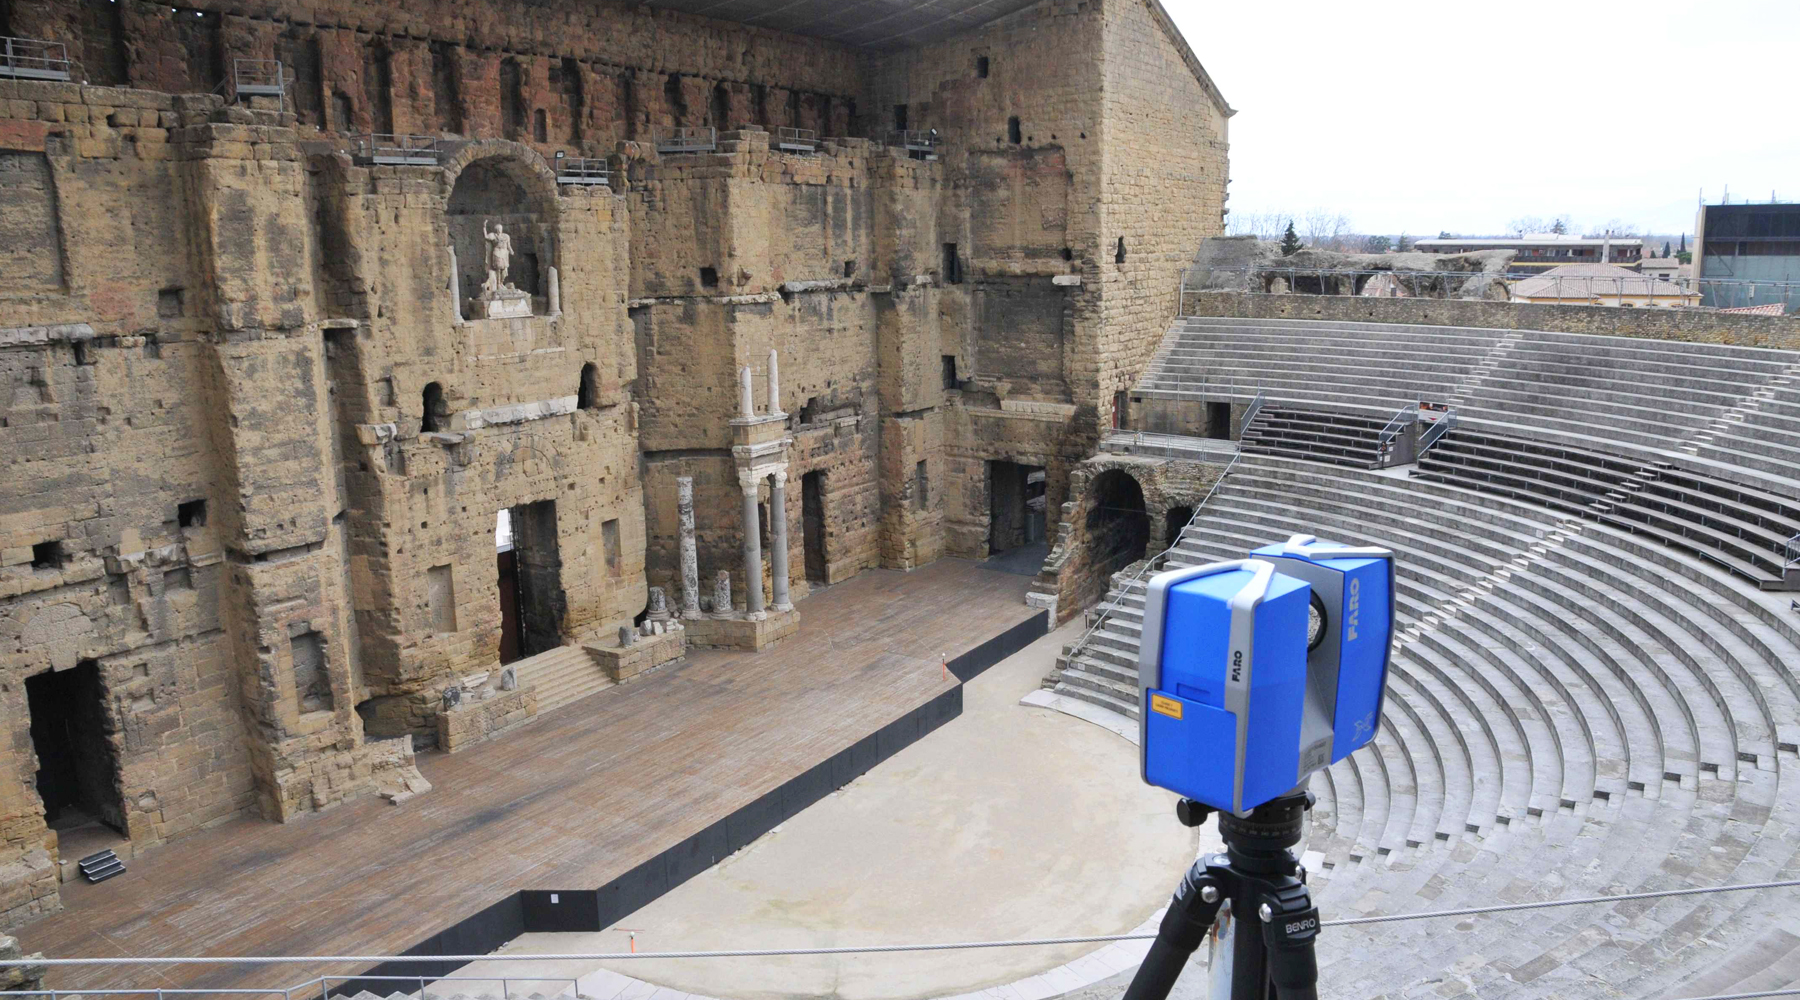 06 Roman theater, Orange - Laser scanning survey